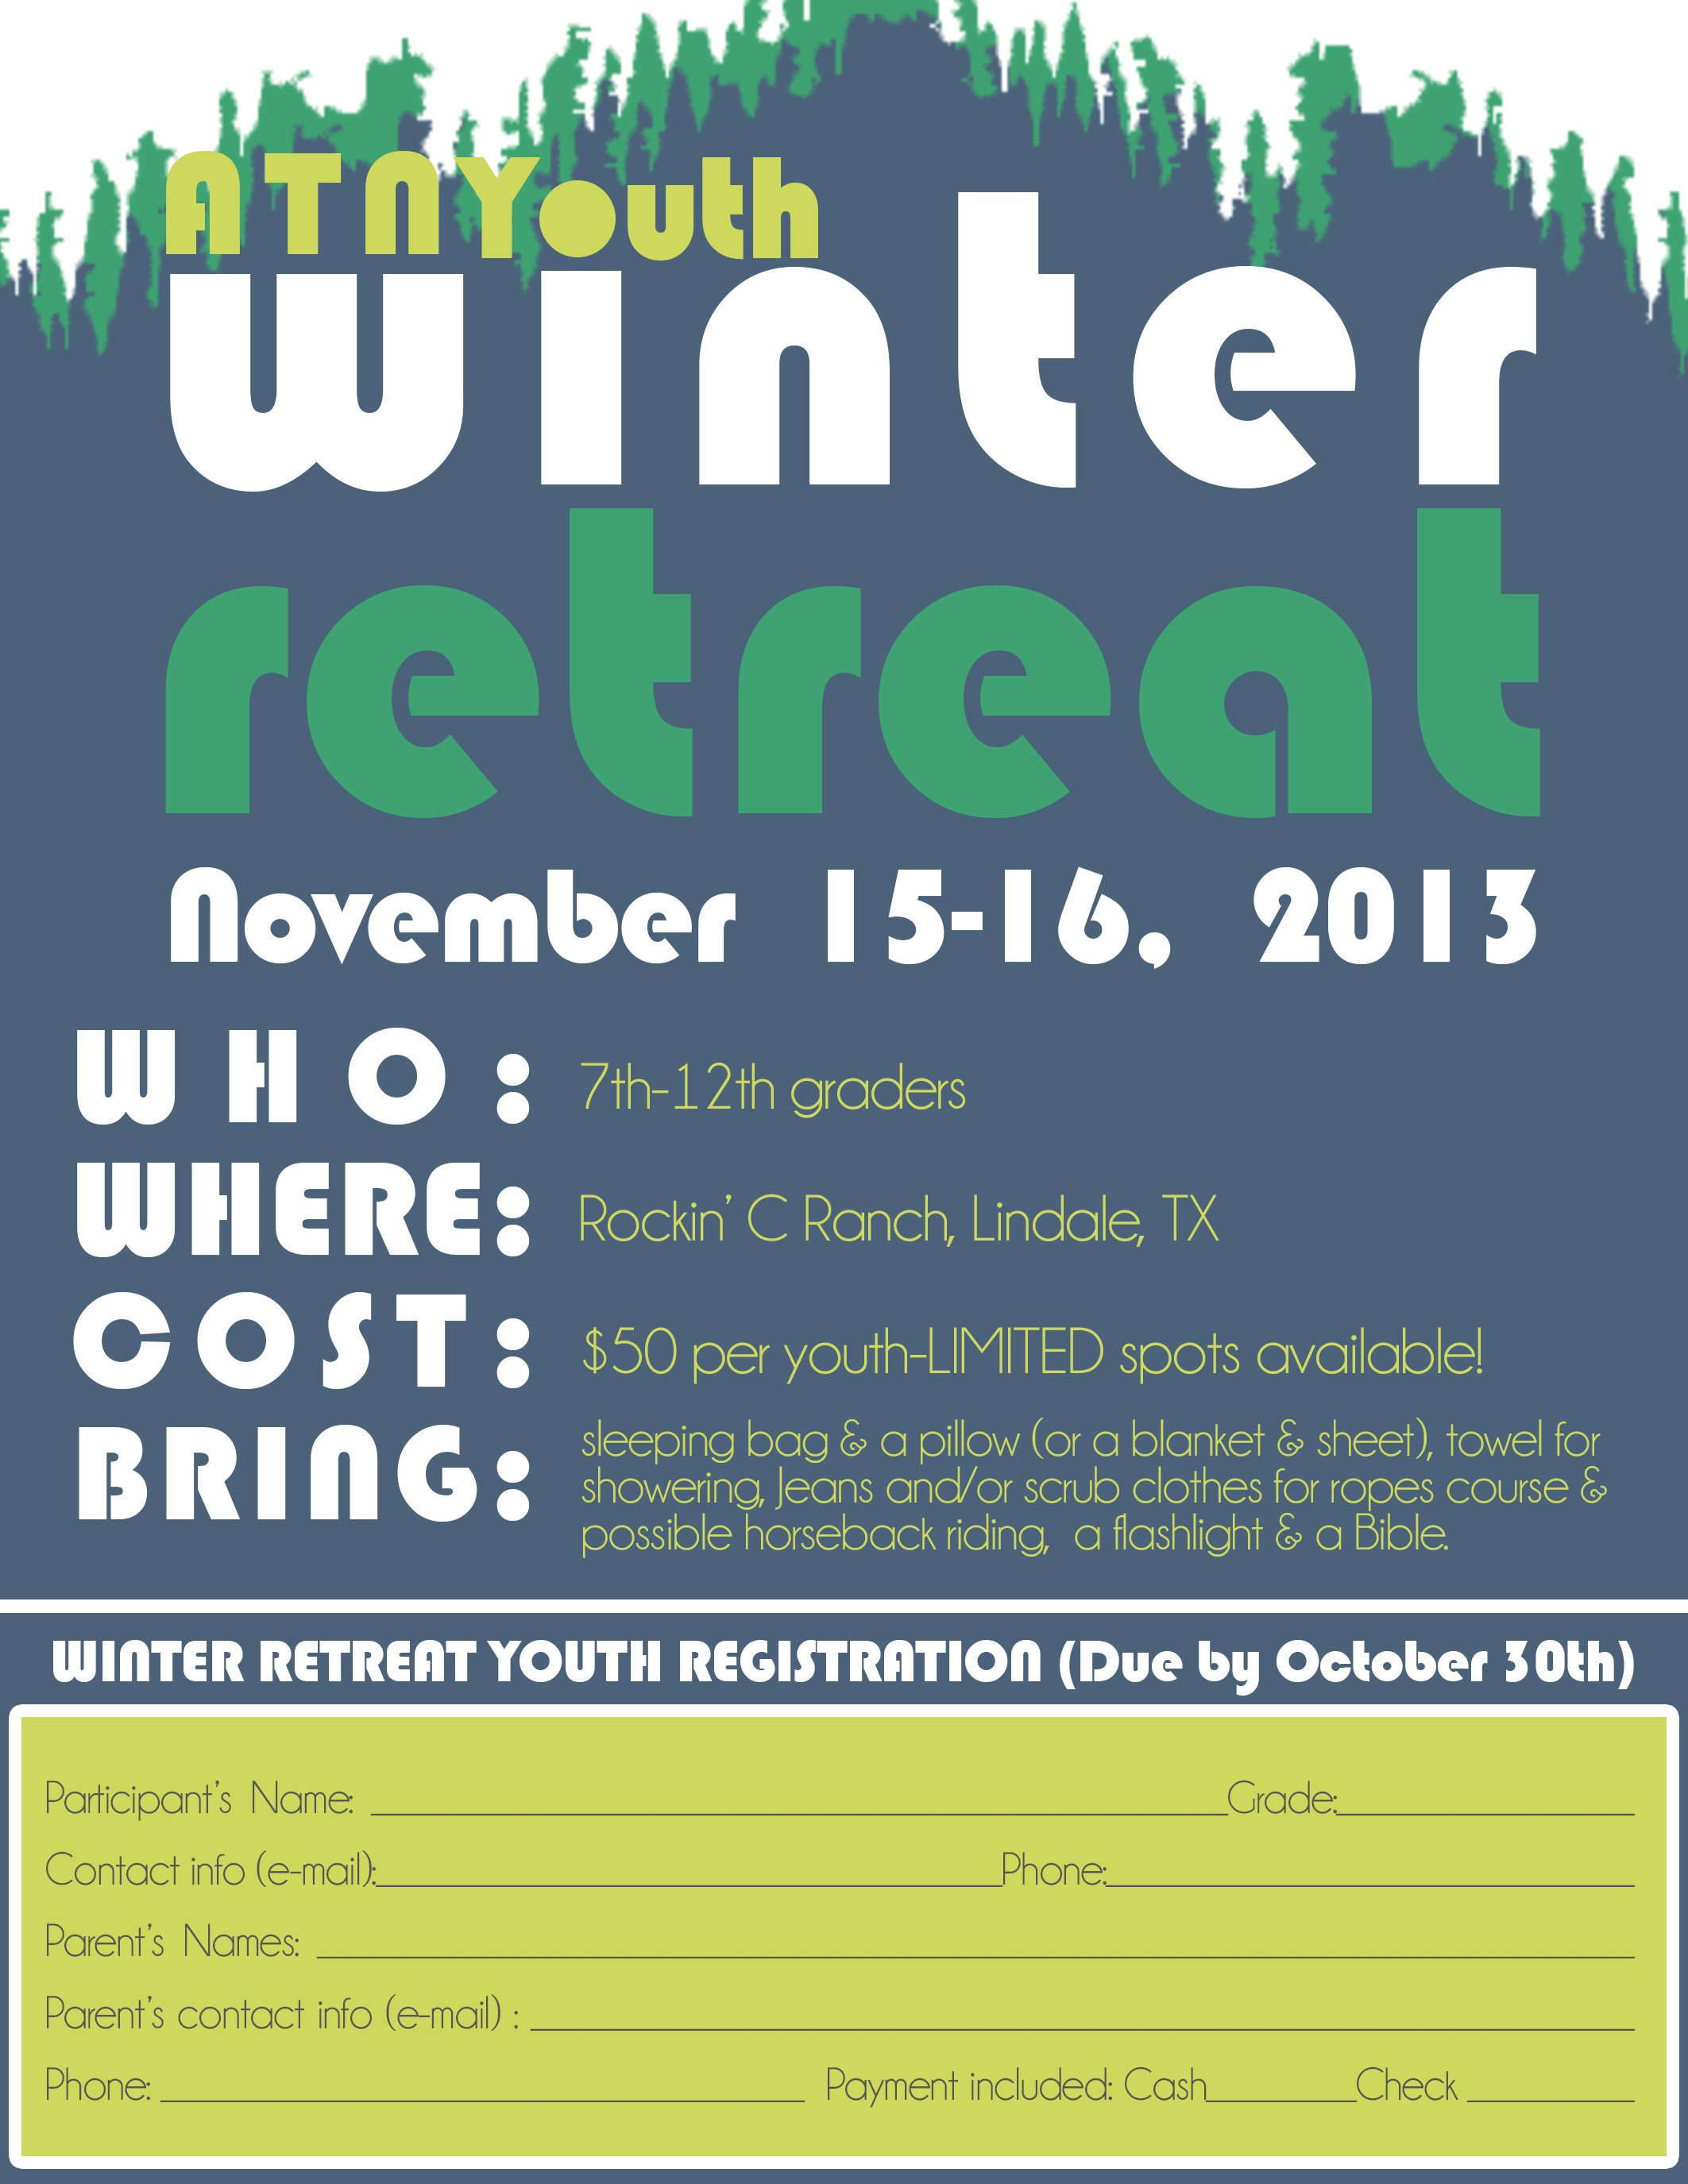 Youth Retreat Flyers Winter Retreat Registration 2013